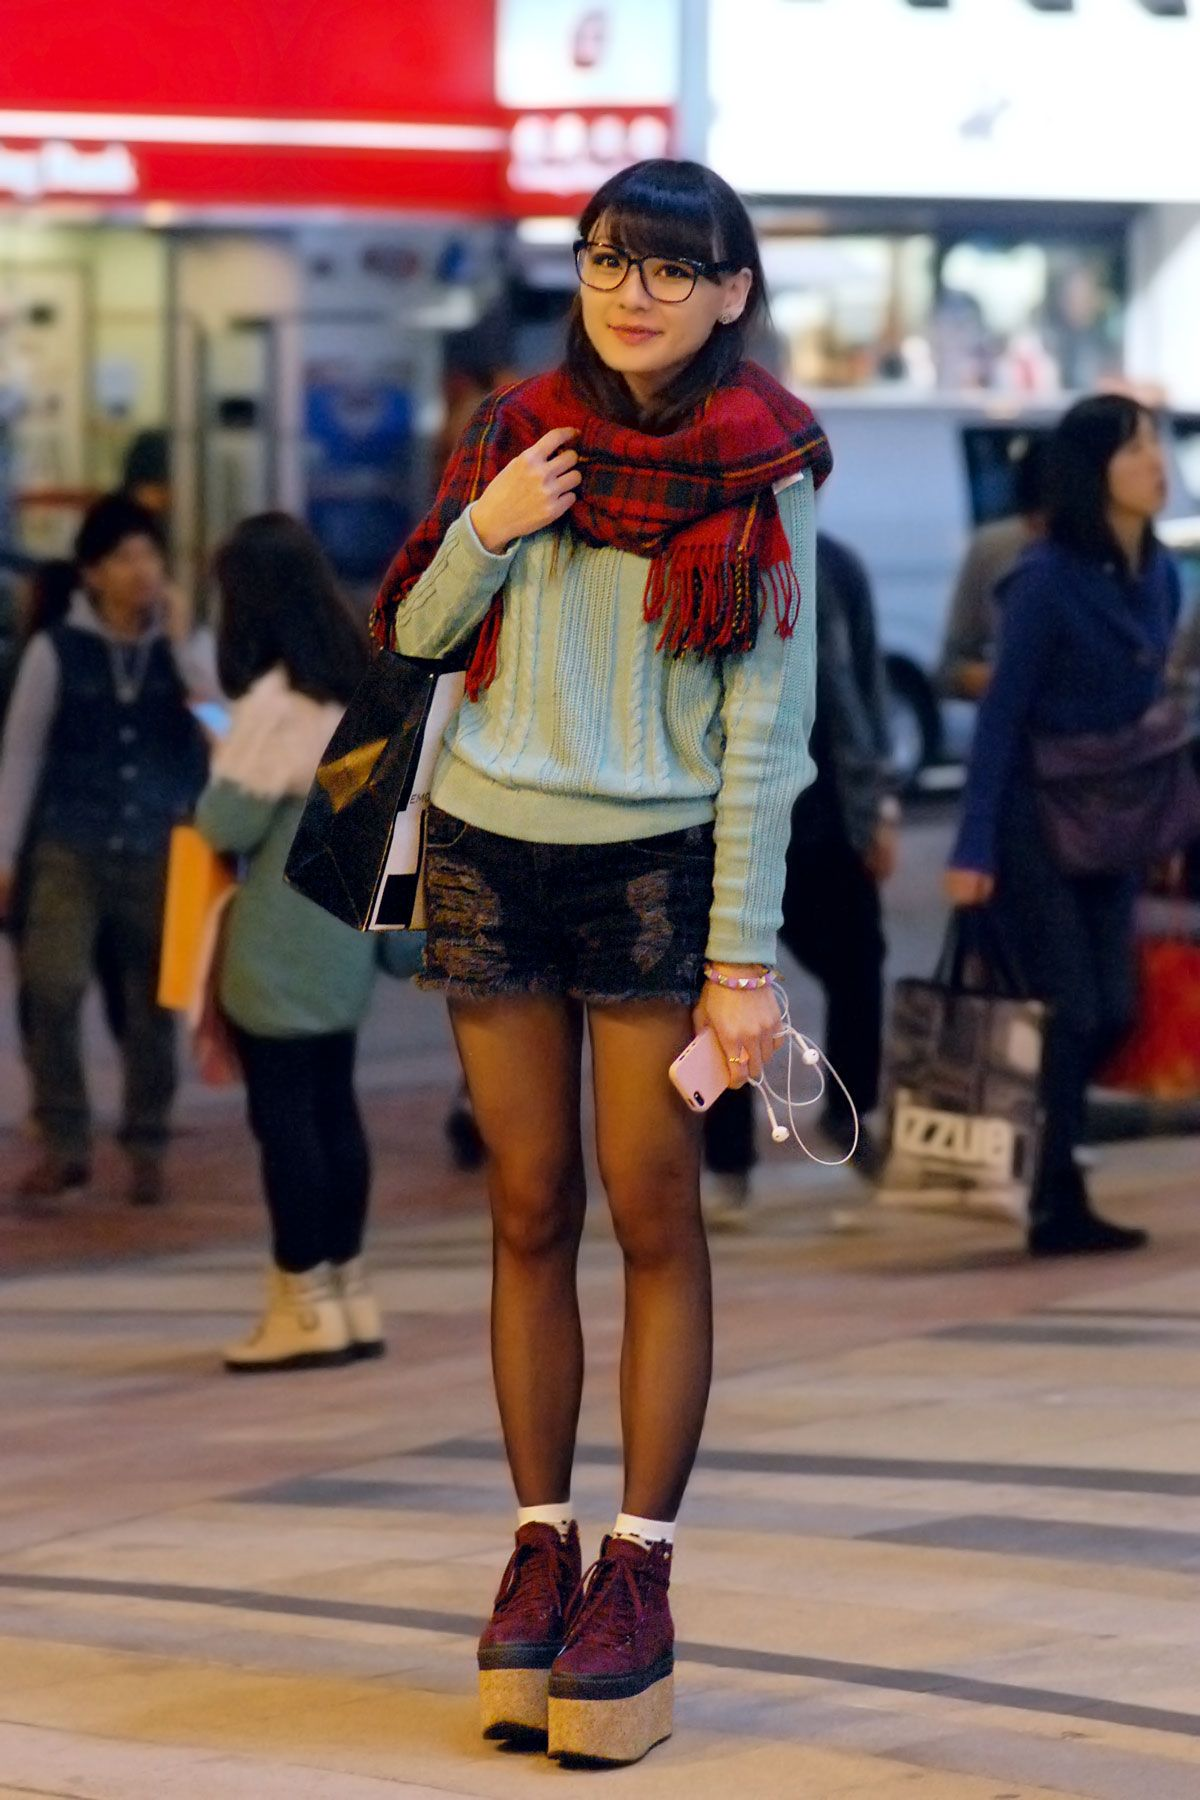 Hong Kong Street Style Have Here Showcase Trendy Folks From This Part Of The World Description Fashionfuz I Searched For On Bing Images